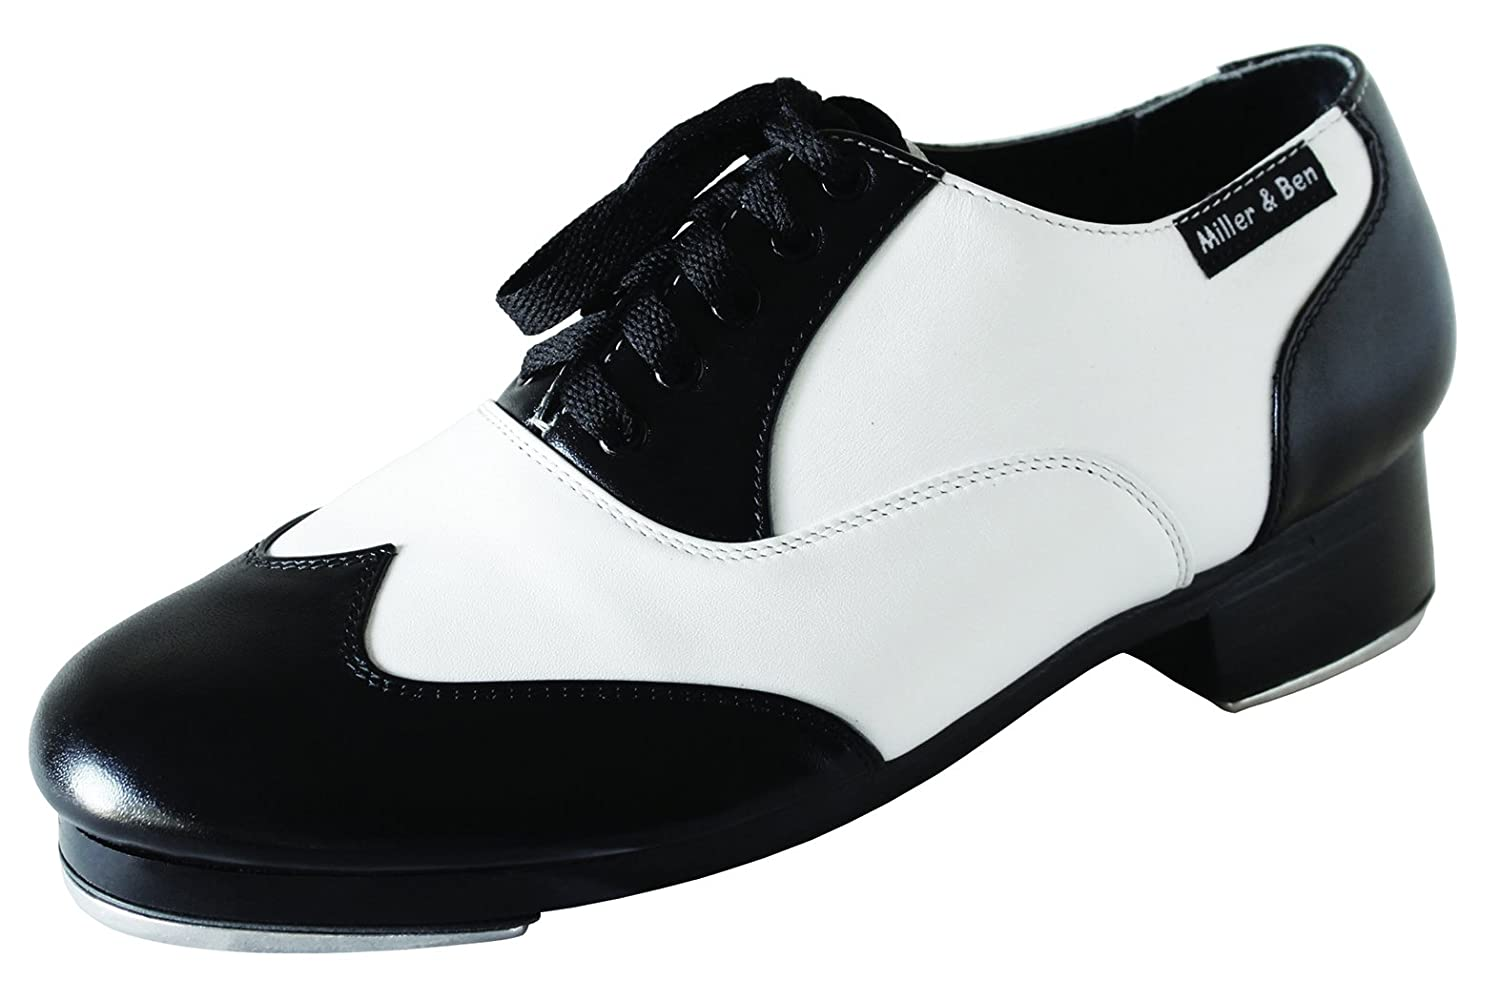 1940s Womens Shoe Styles Miller & Ben Tap Shoes Jazz-Tap Master Black & White - STANDARD SIZES $285.00 AT vintagedancer.com